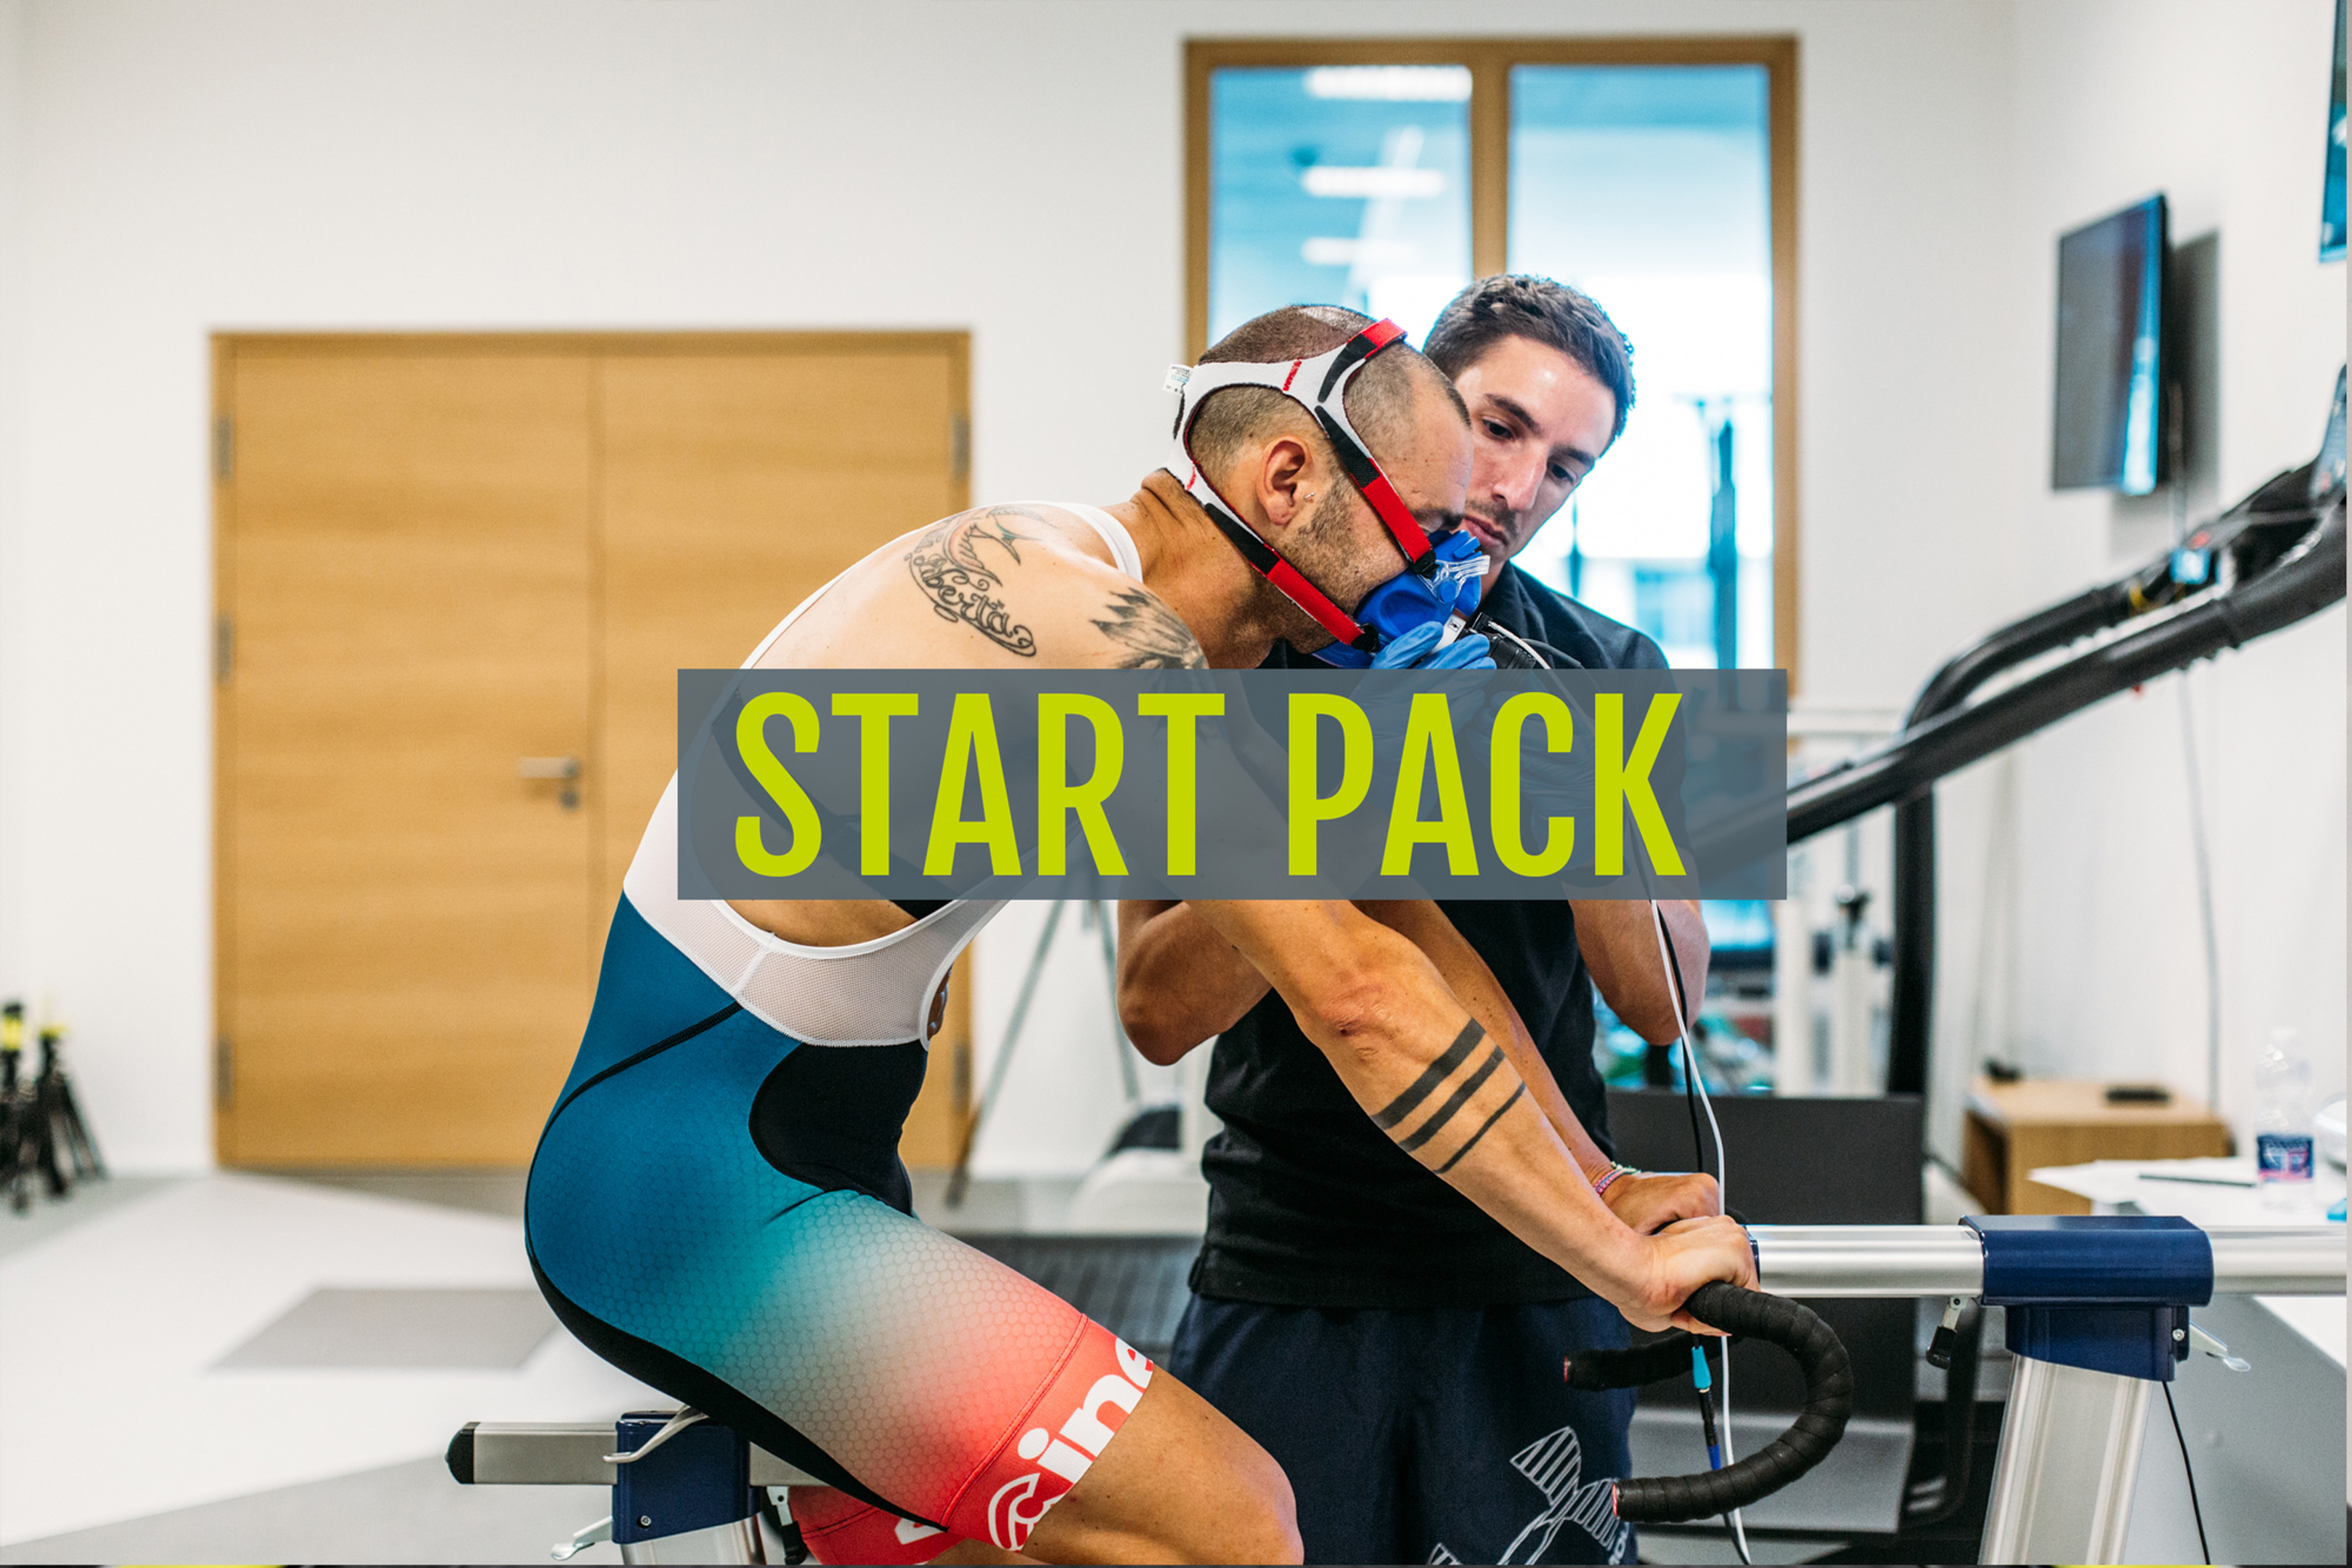 Ciclismo - Start Pack